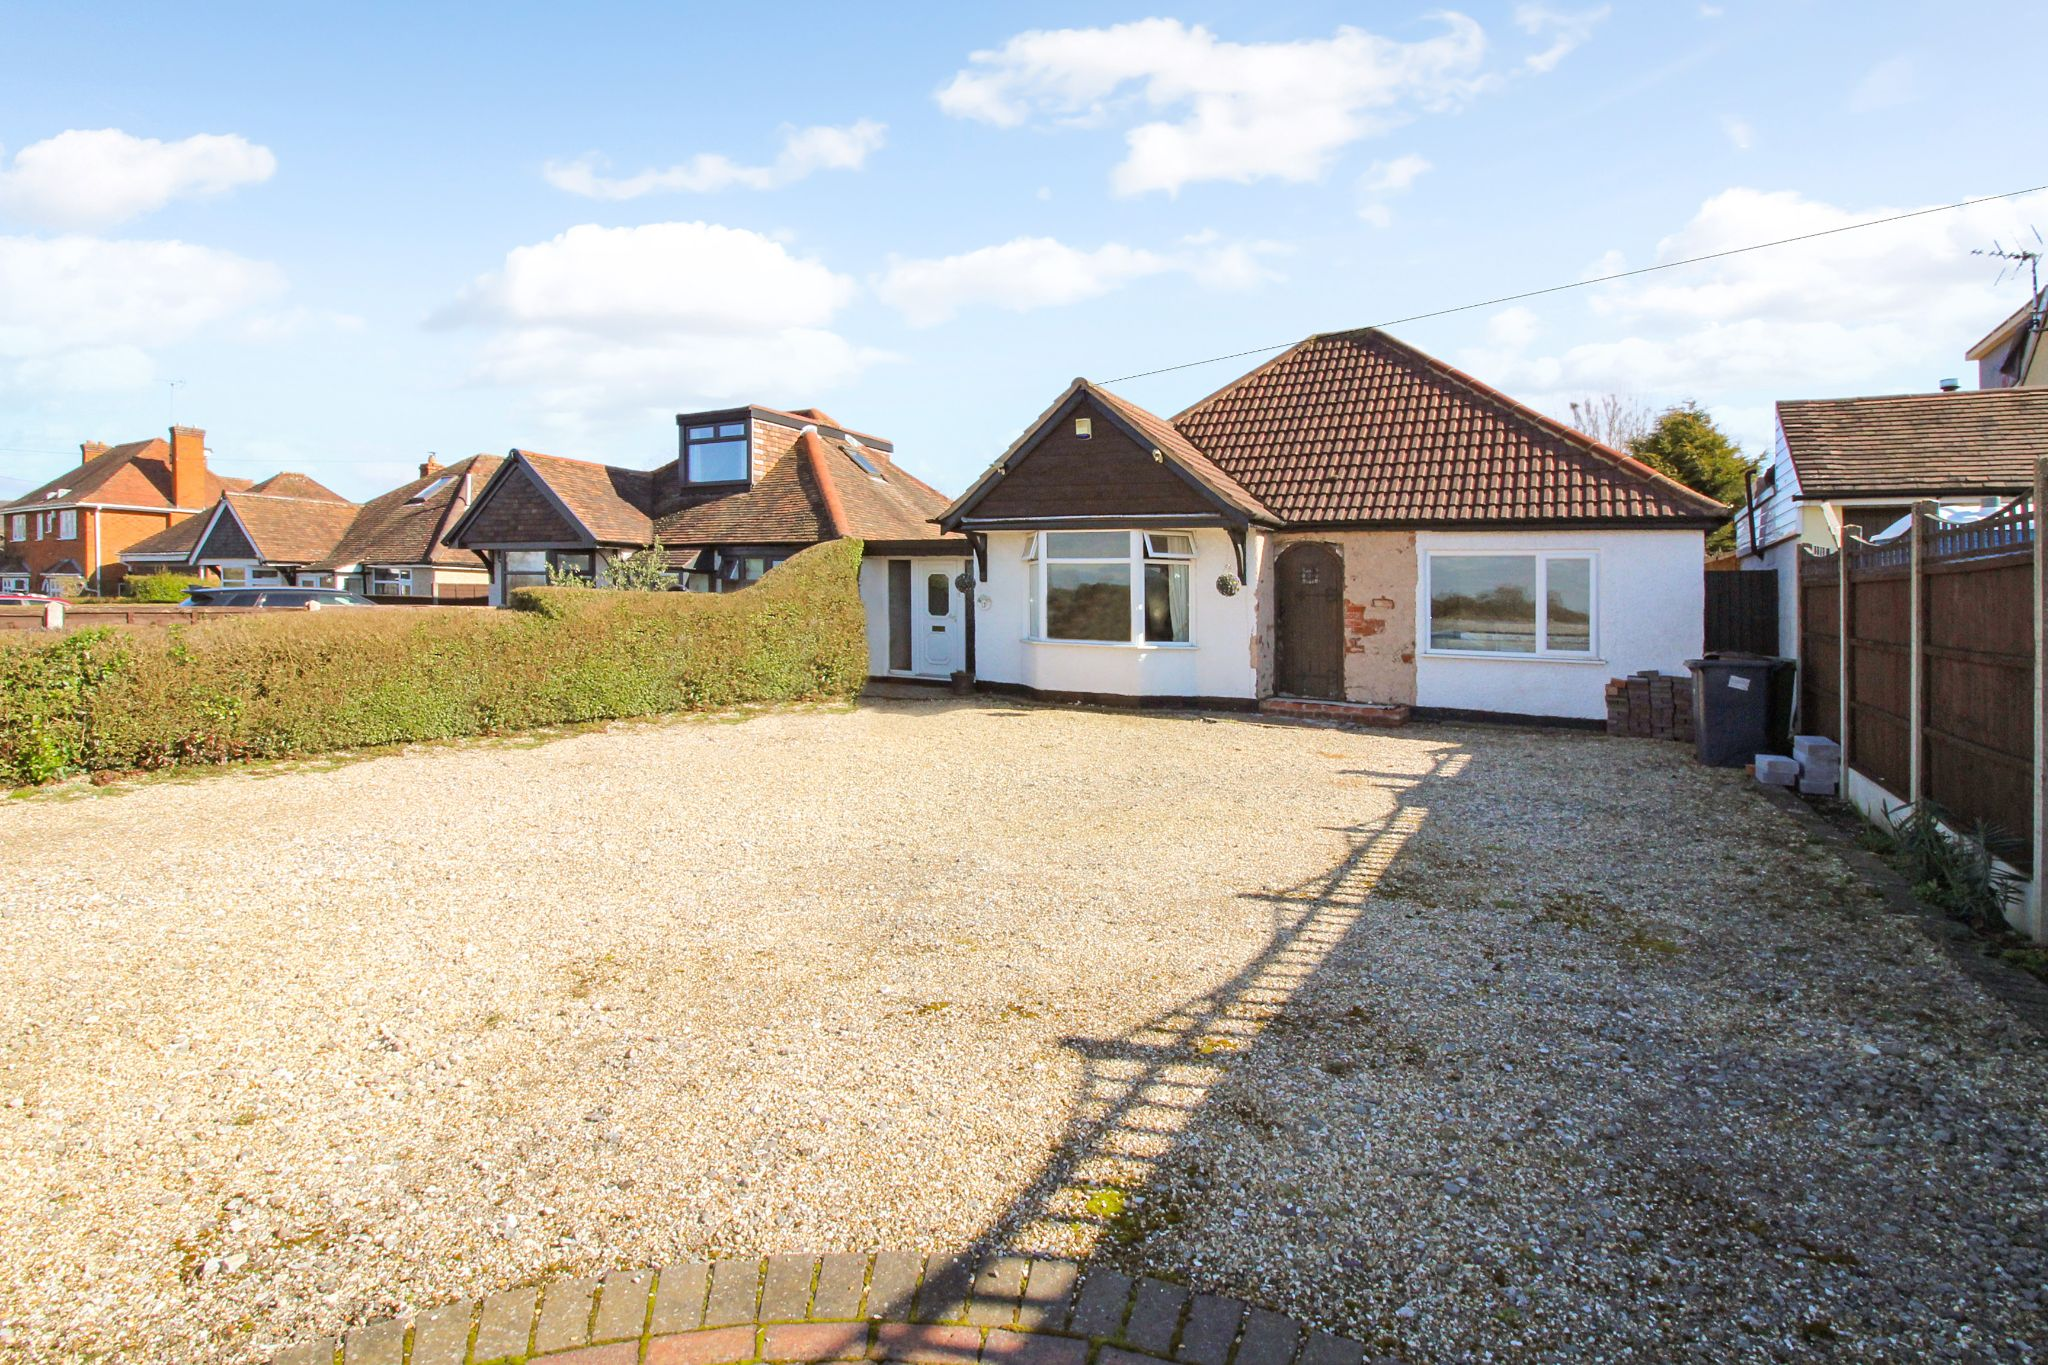 3 bedroom detached bungalow SSTC in Solihull - Photograph 1.